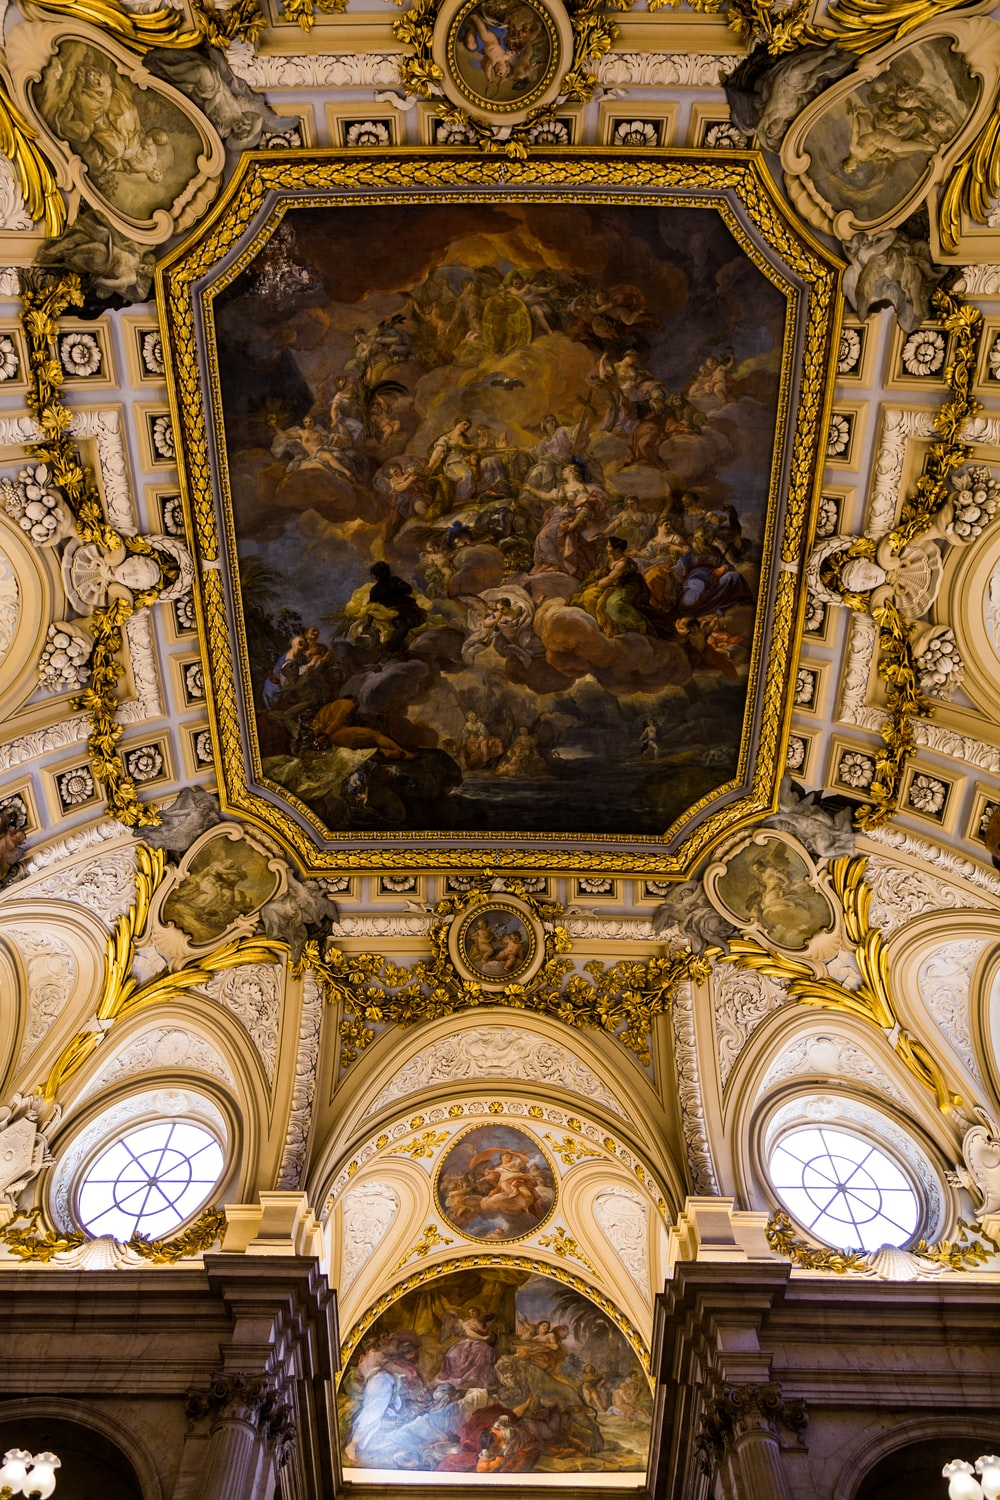 painting in cathedral ceiling